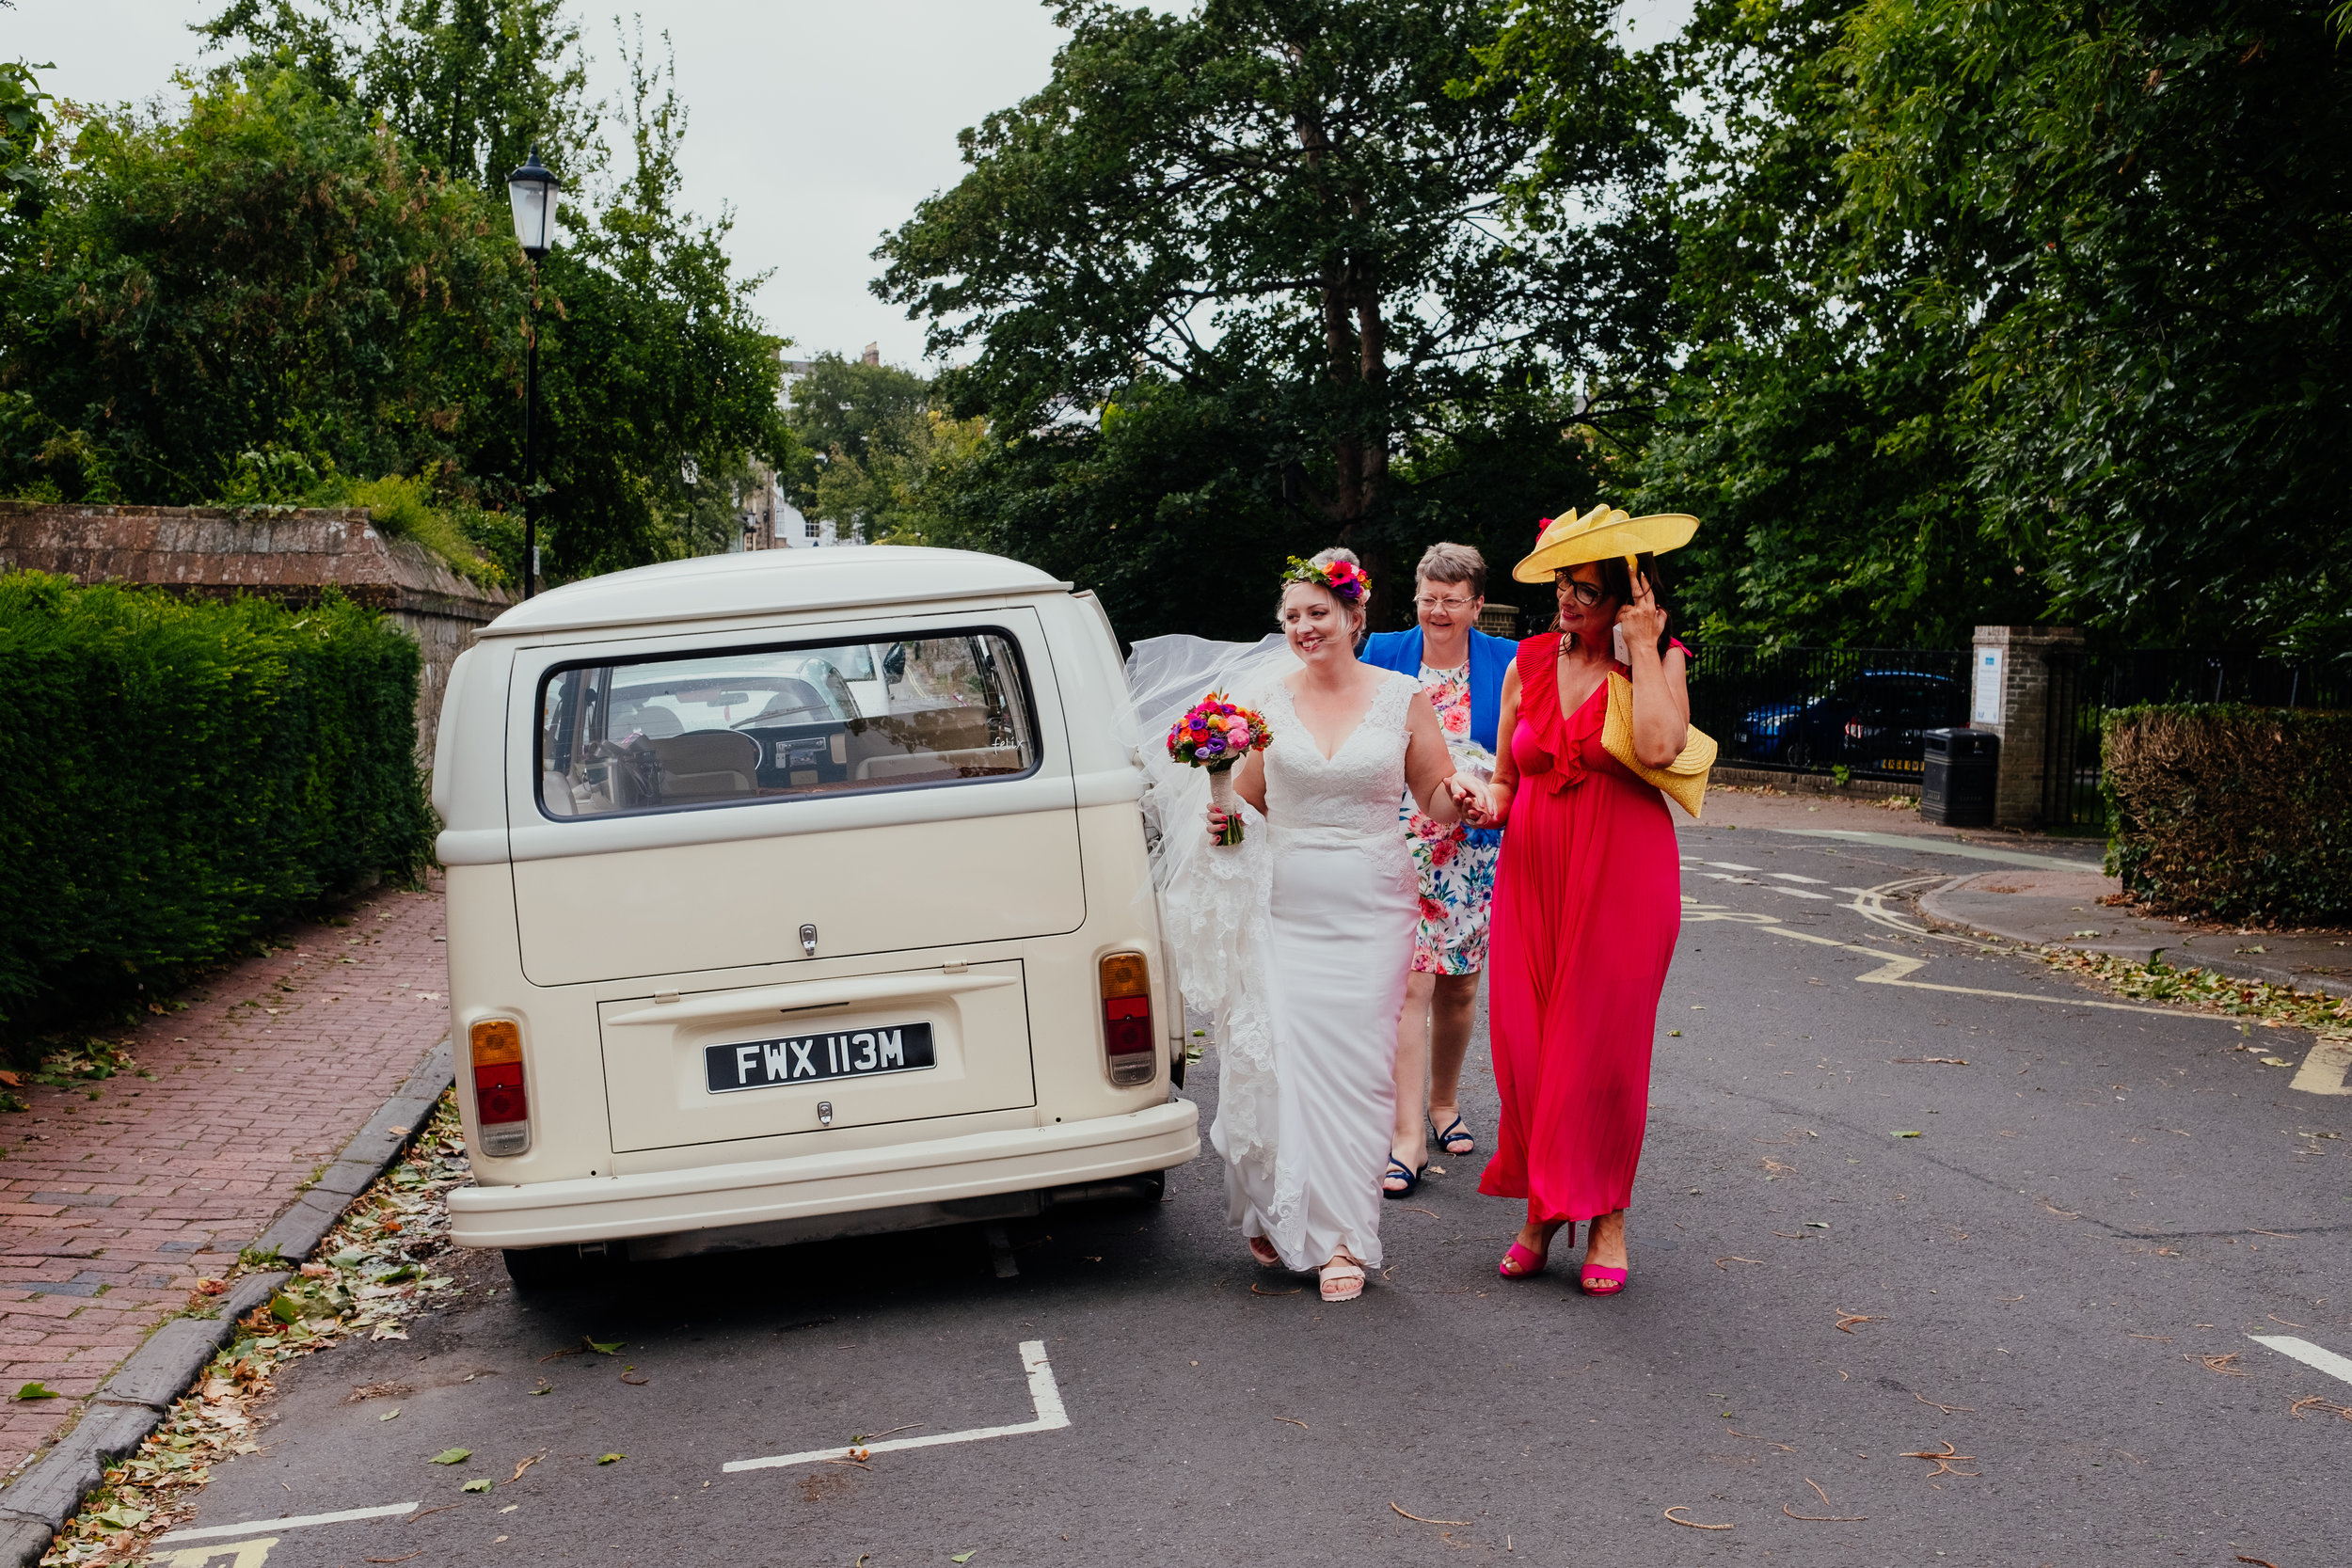 Vegan bride arrives at wedding in VW camper van